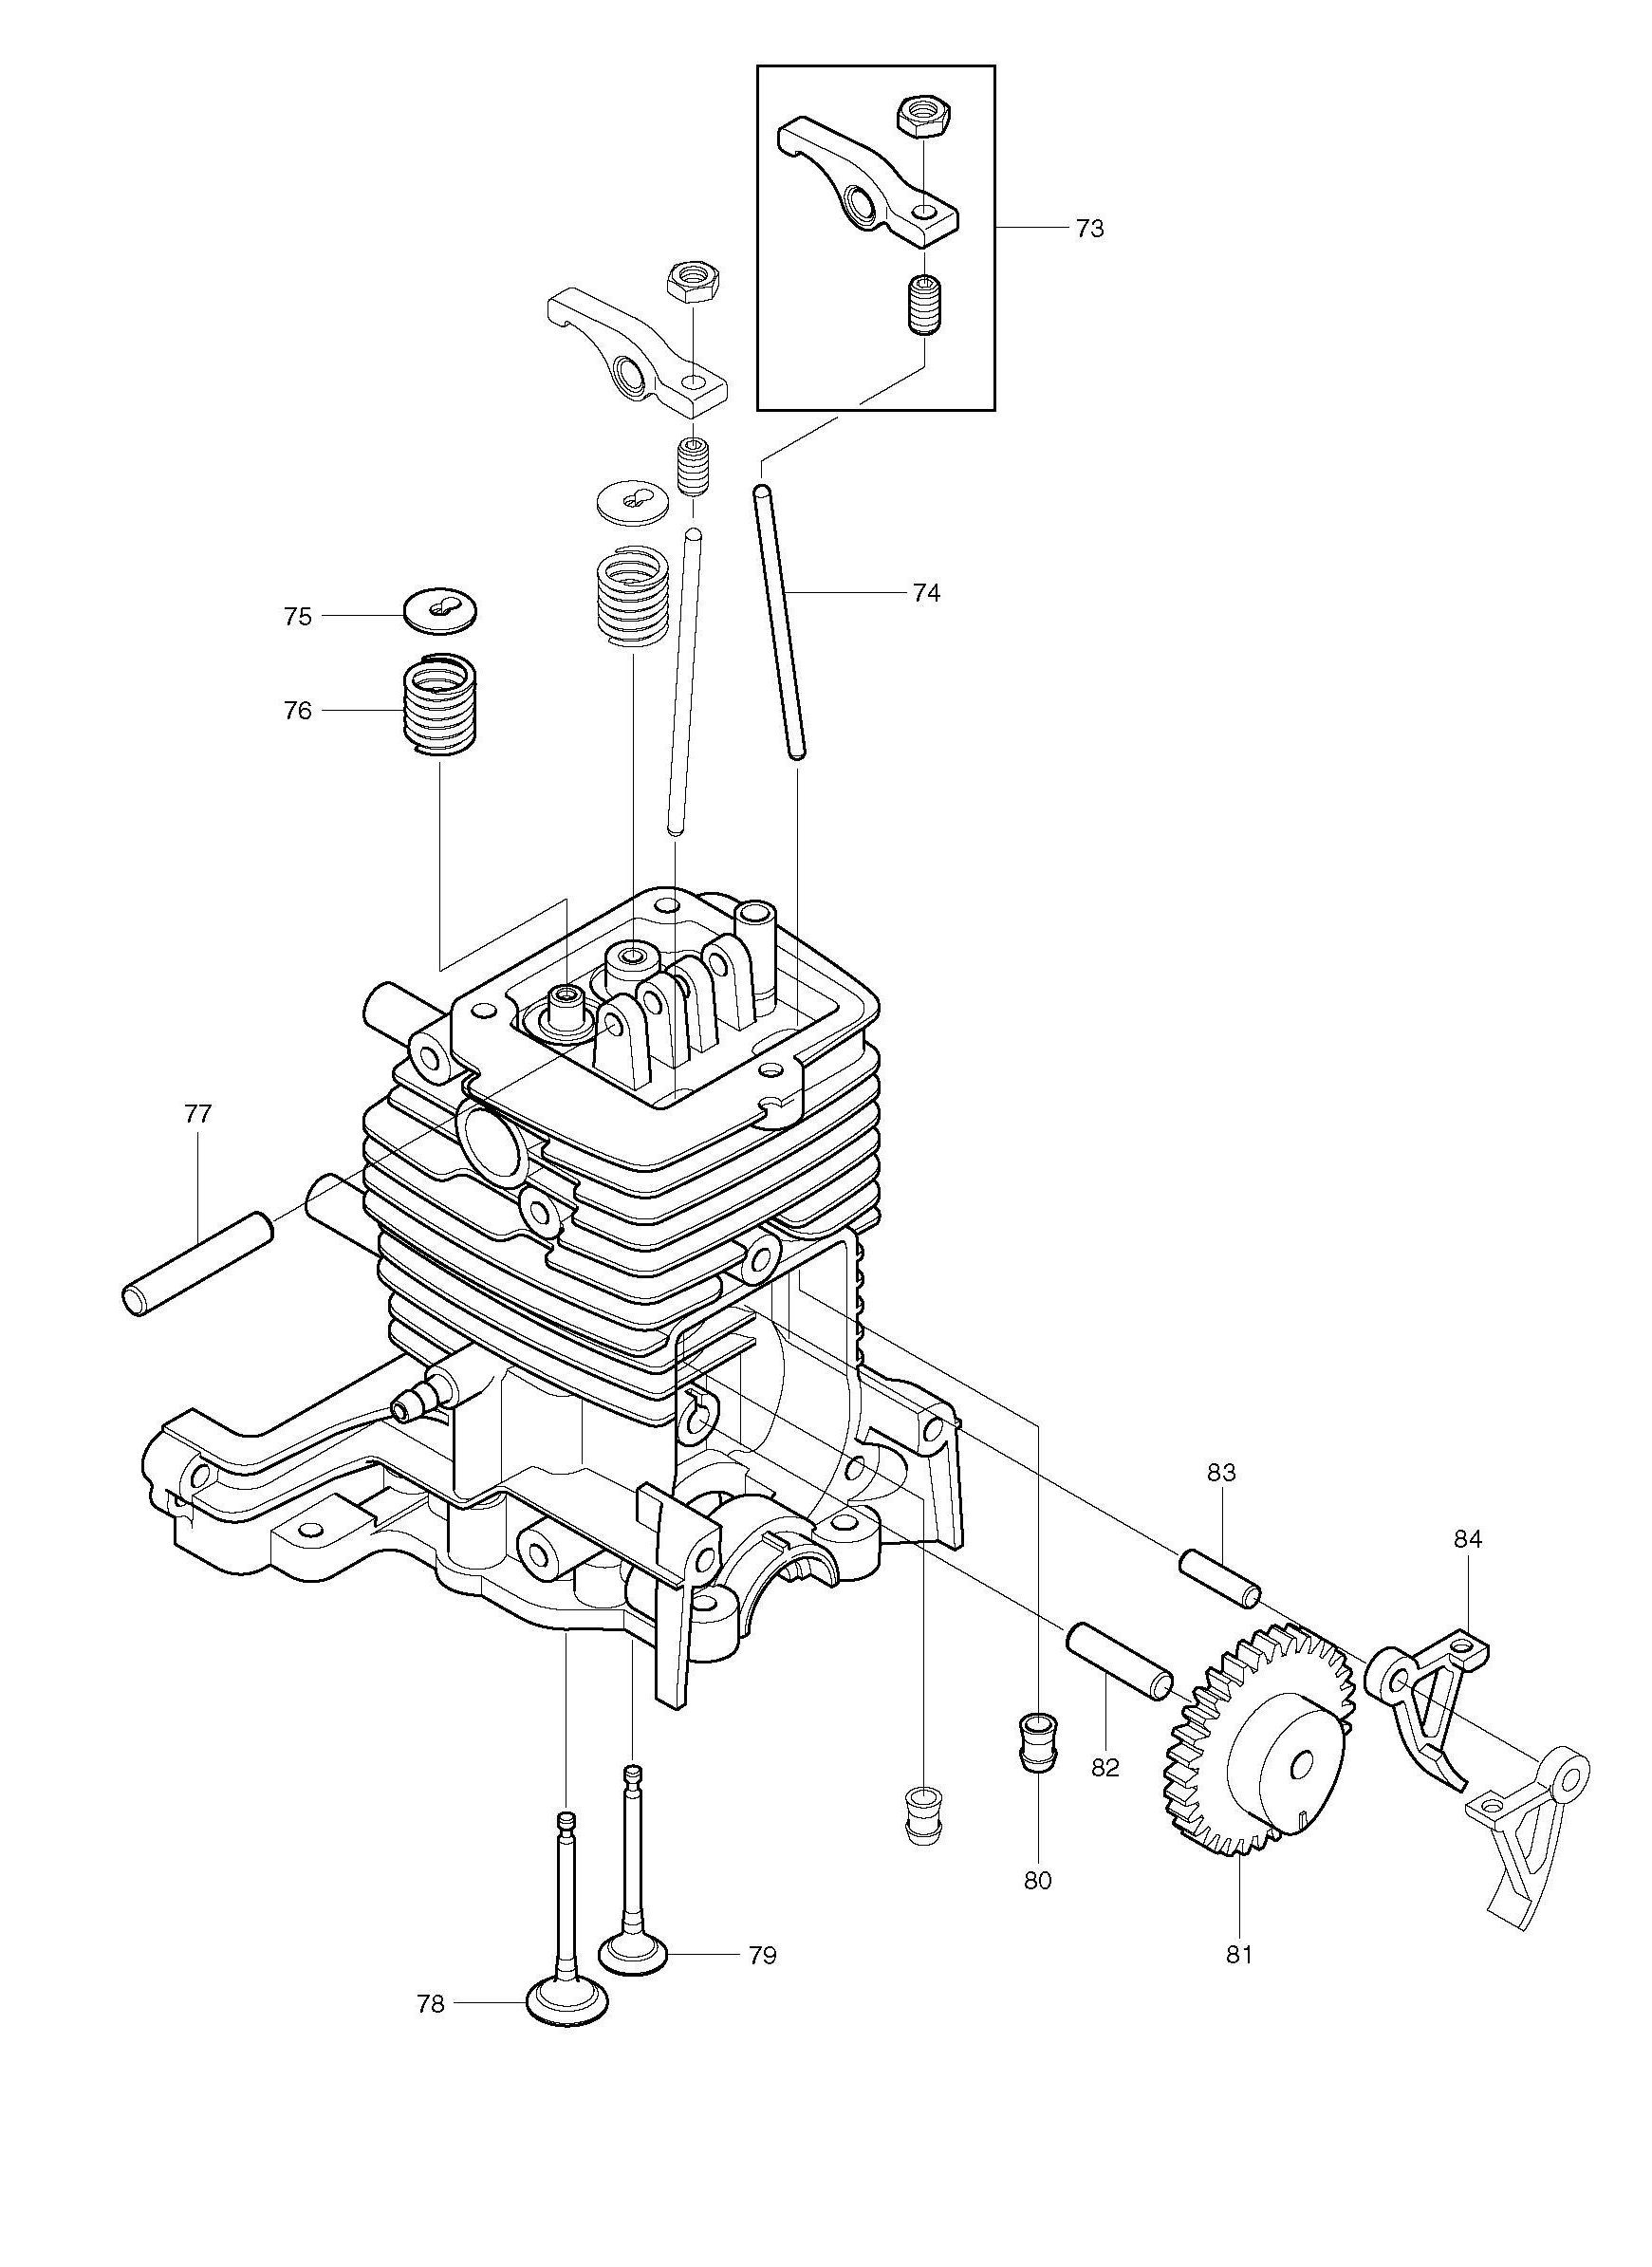 4 Stroke Petrol Engine Diagram Spares for Makita Bhx2500 4 Stroke Petrol Blower Spare Bhx2500 From Of 4 Stroke Petrol Engine Diagram